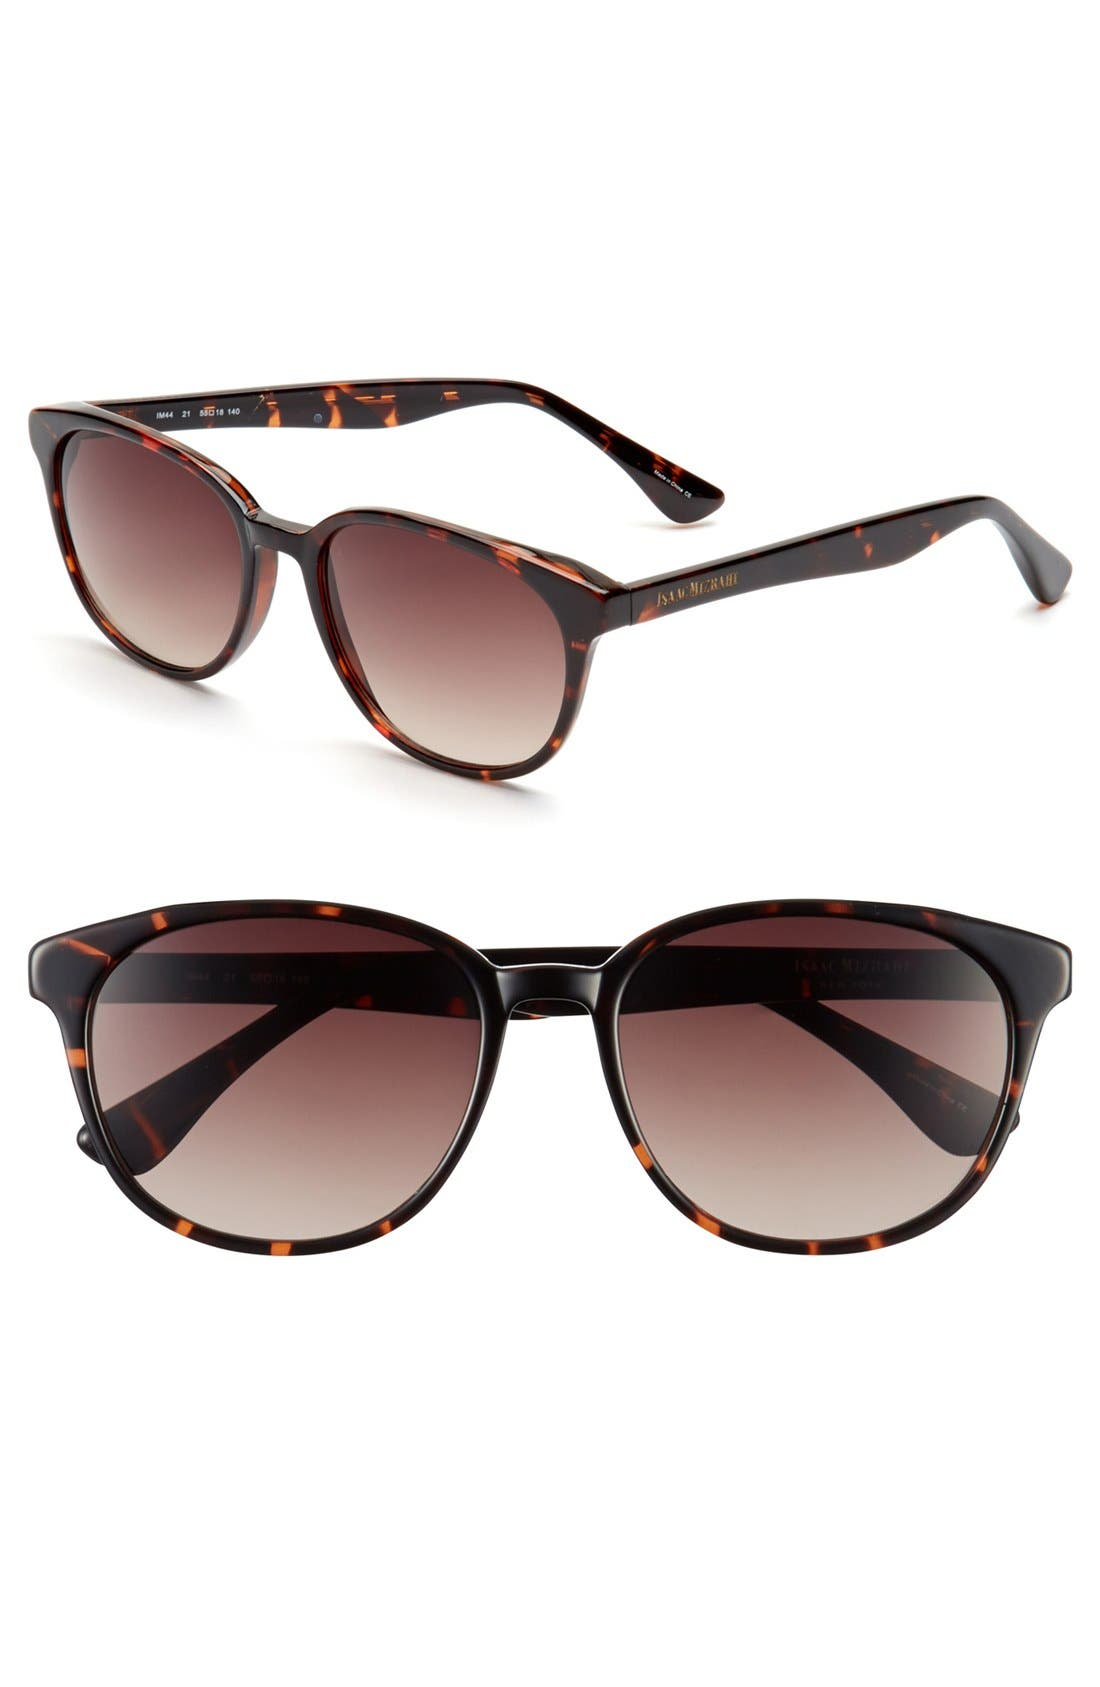 Main Image - Isaac Mizrahi New York 55mm Retro Sunglasses